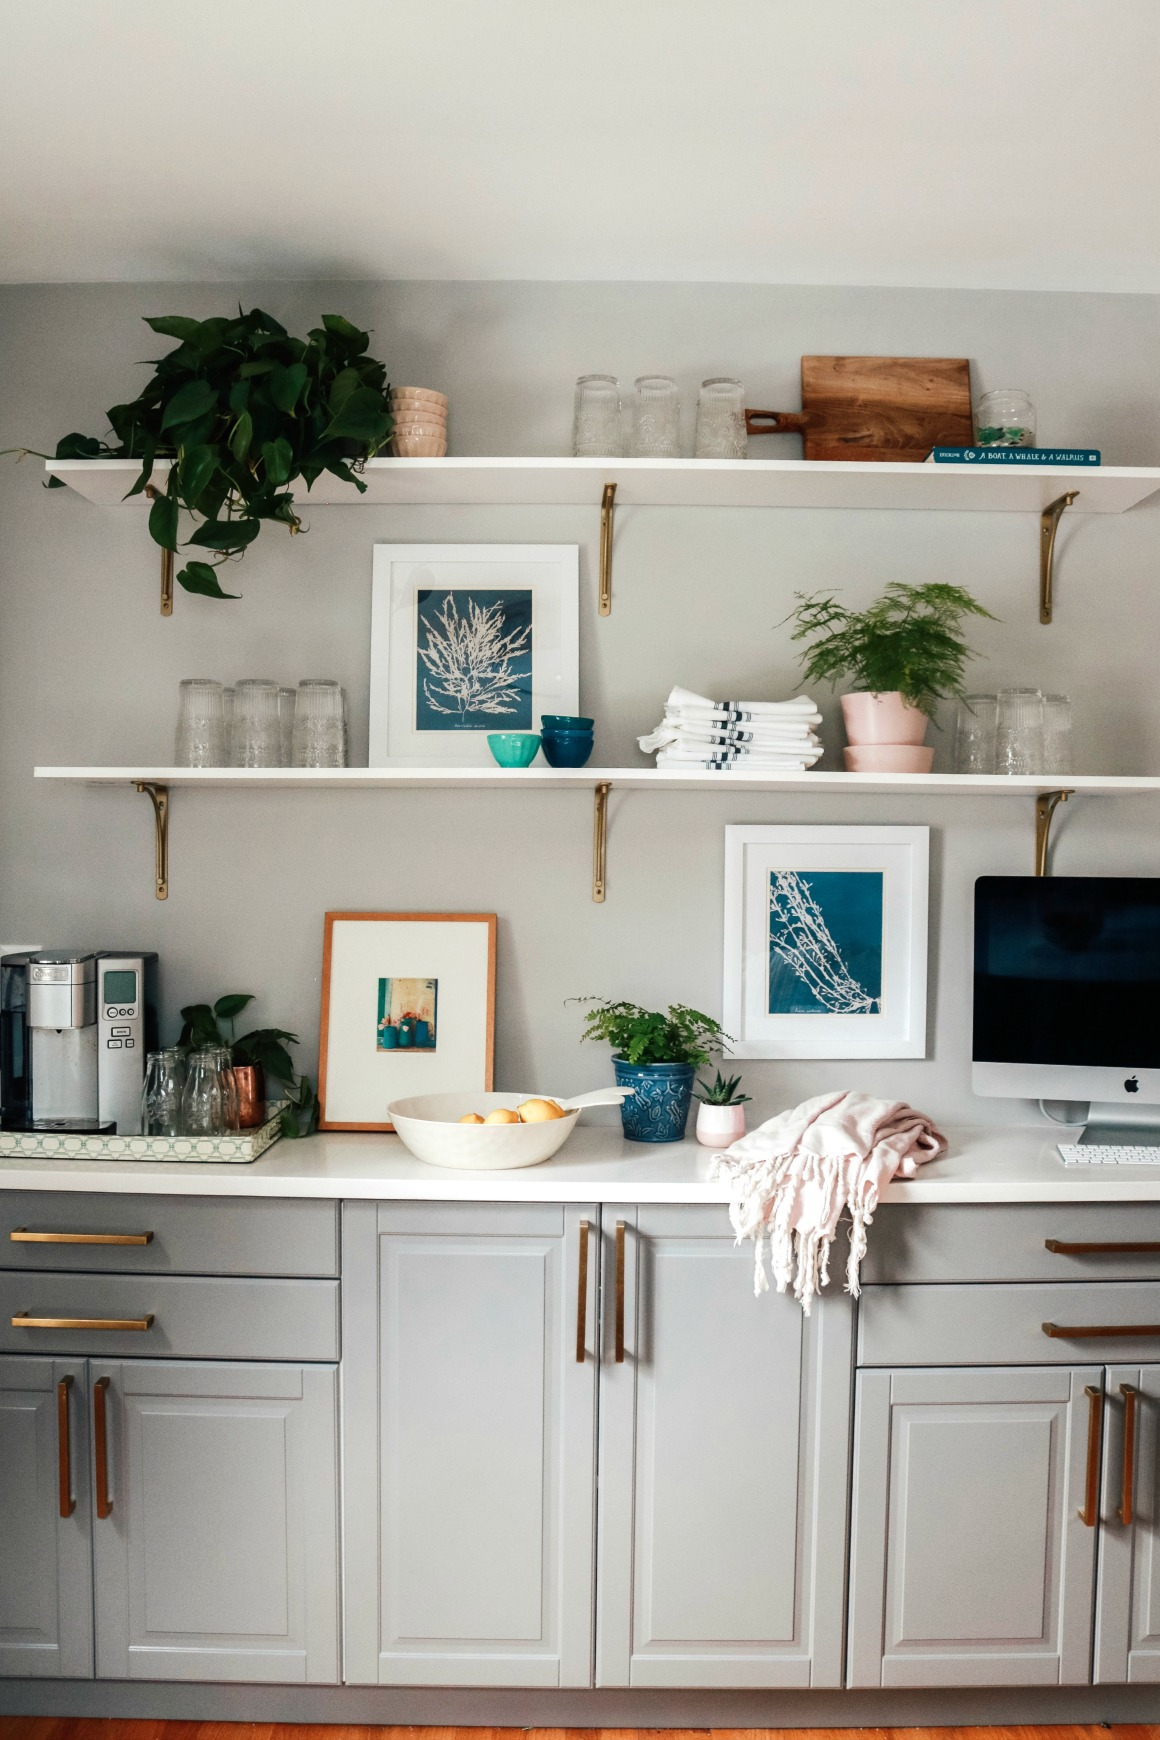 Kitchen Shelf Styling Diy Open Shelves With Affordable Decor Nesting With Grace